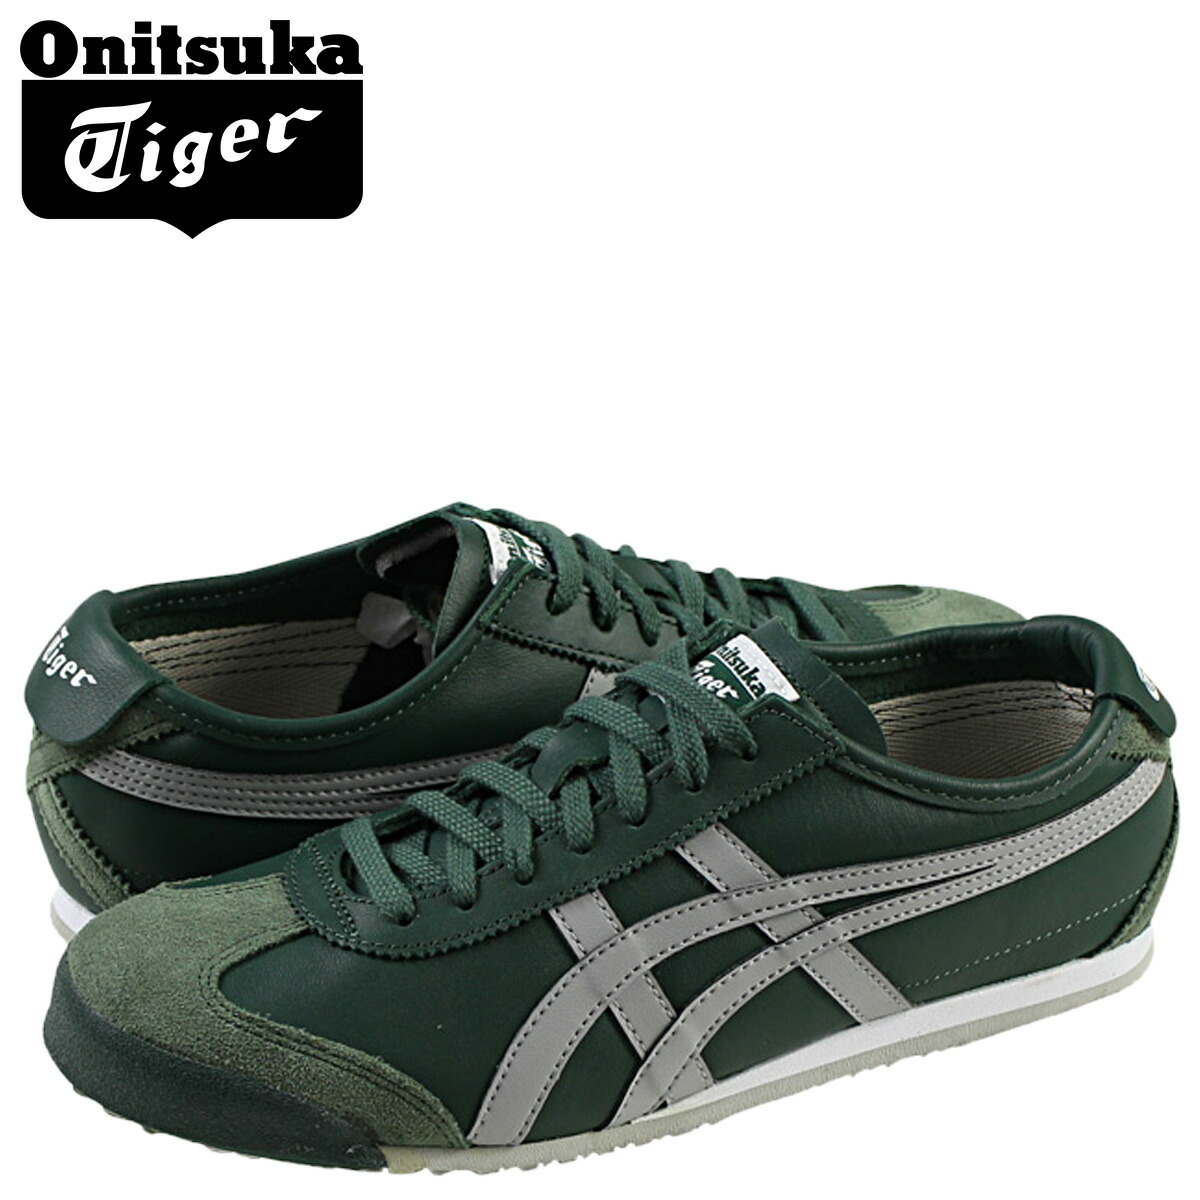 onitsuka tiger mexico 66 shoes price in india quick use